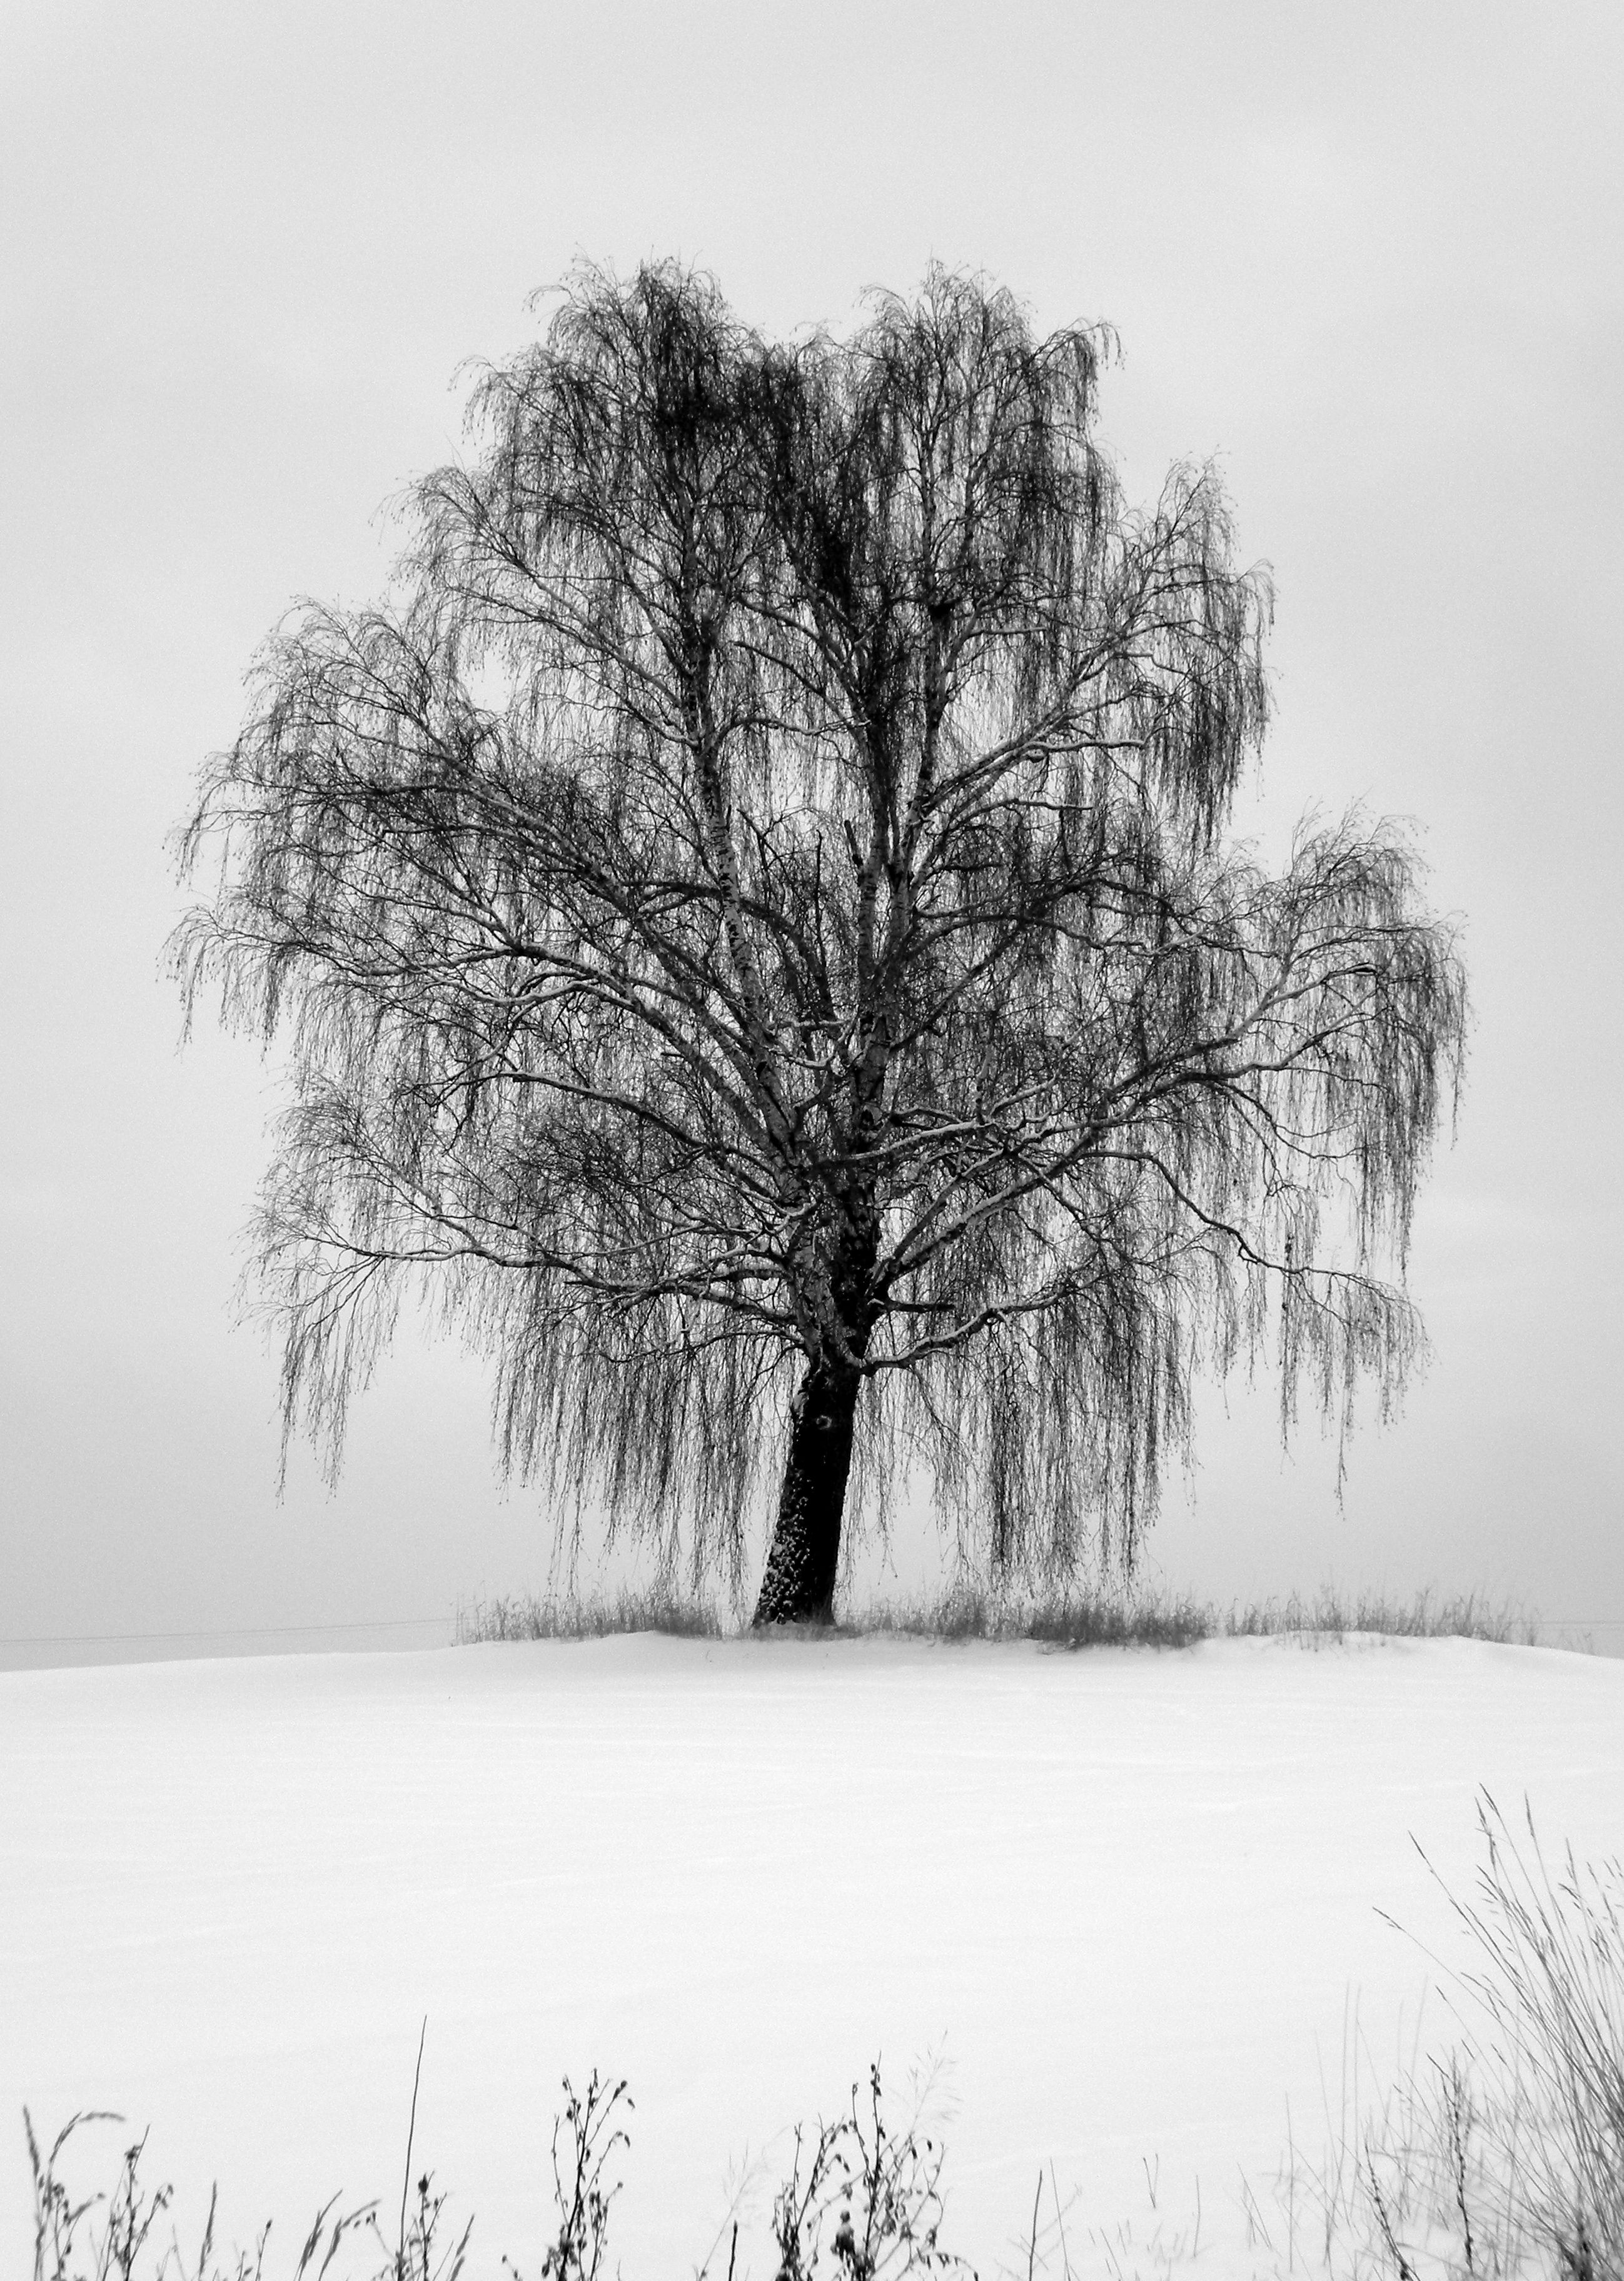 Weeping Willow waiting for spring. … Willow tree